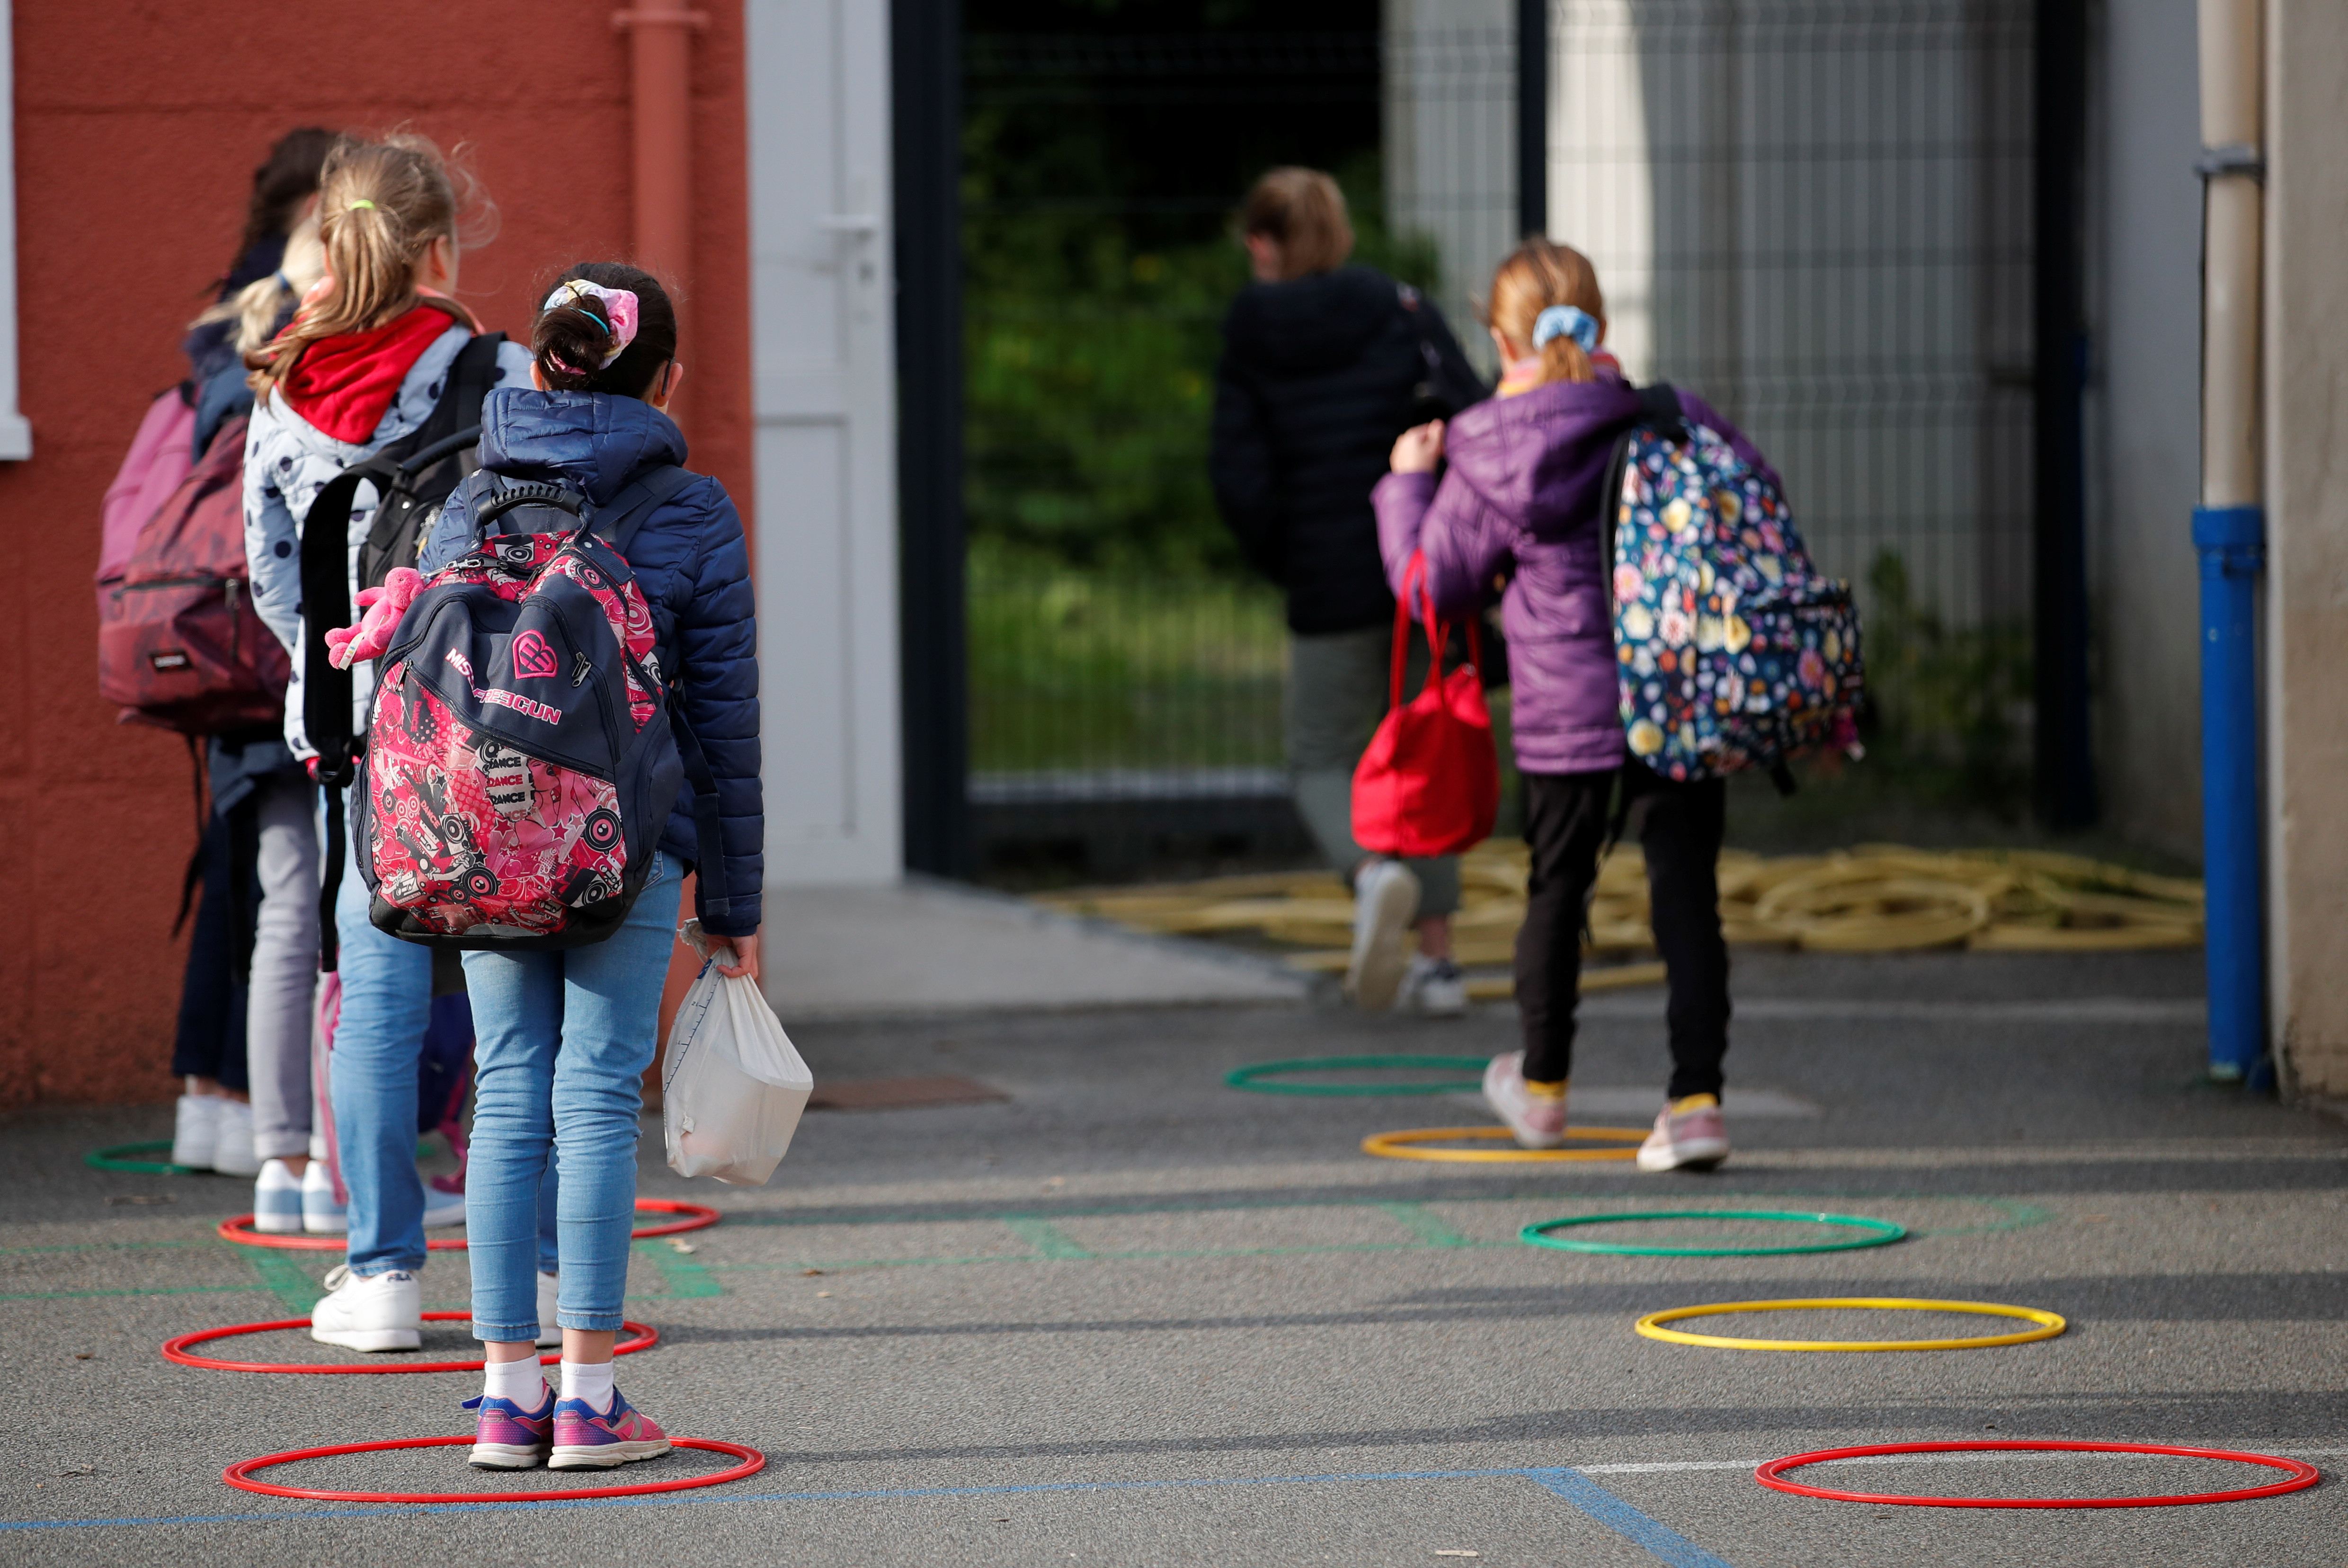 Schoolchildren line up to enter their school during its reopening in Saint-Sebastien-sur-Loire near Nantes as a small part of French children head back to their schools with new rules and social distancing during the outbreak of the coronavirus disease (COVID-19) in France, May 12, 2020. REUTERS/Stephane Mahe - RC2XMG9FH9WO